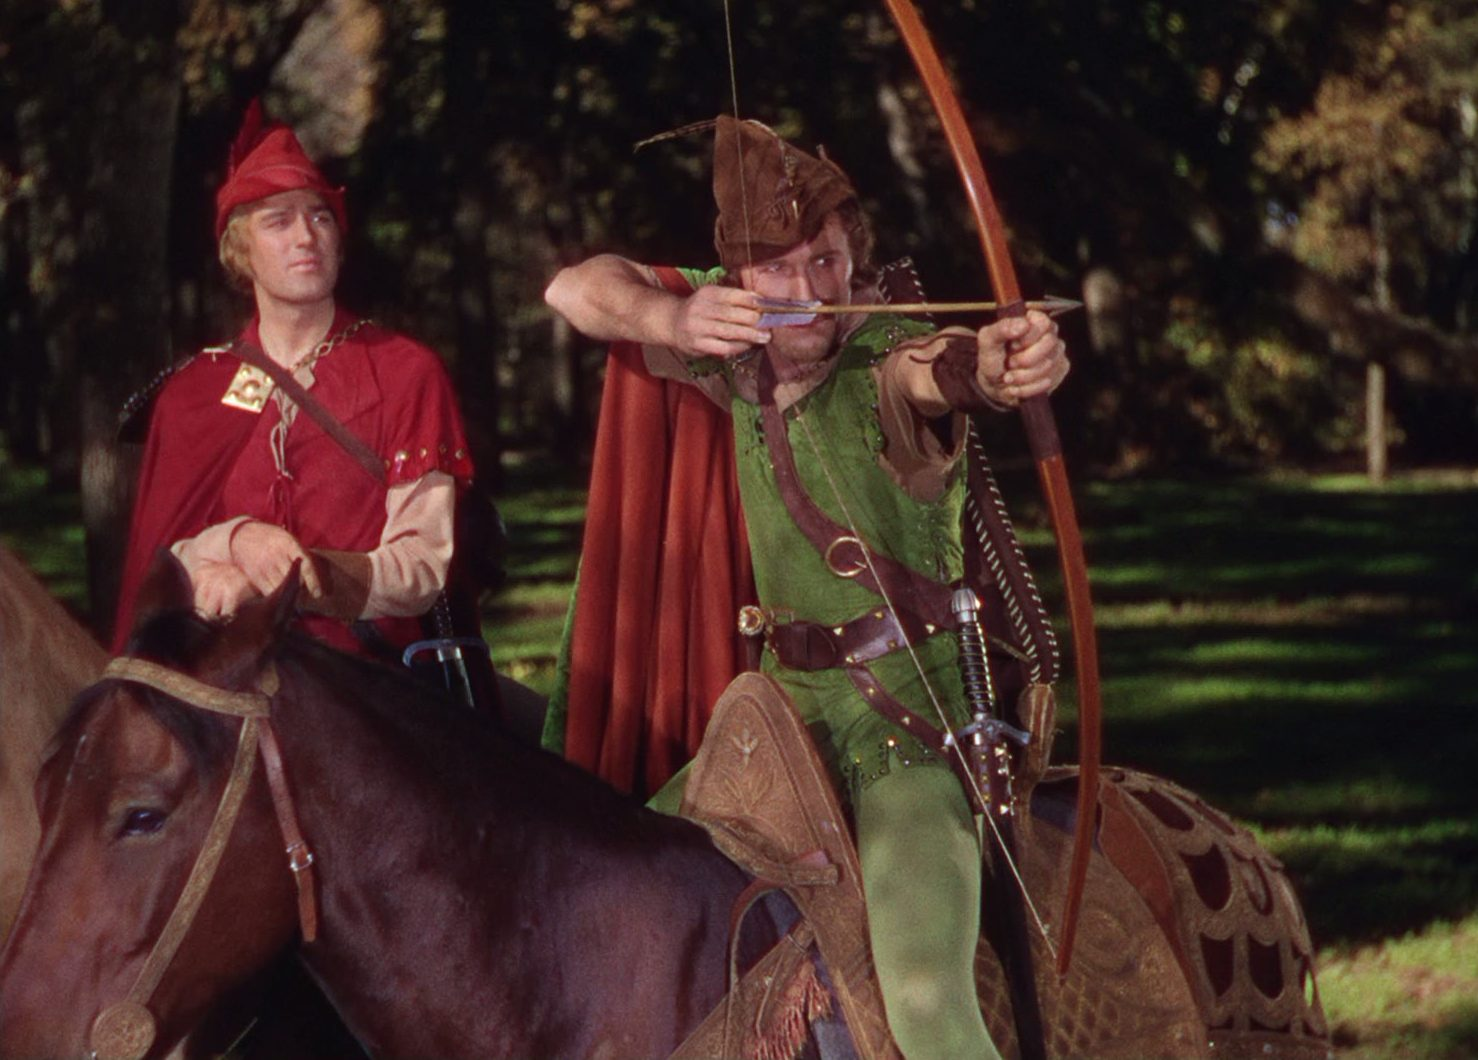 Patrick Knowles (Will Scarlett) and Errol Flynn (Robin Hood) in The Adventures of Robin Hood.